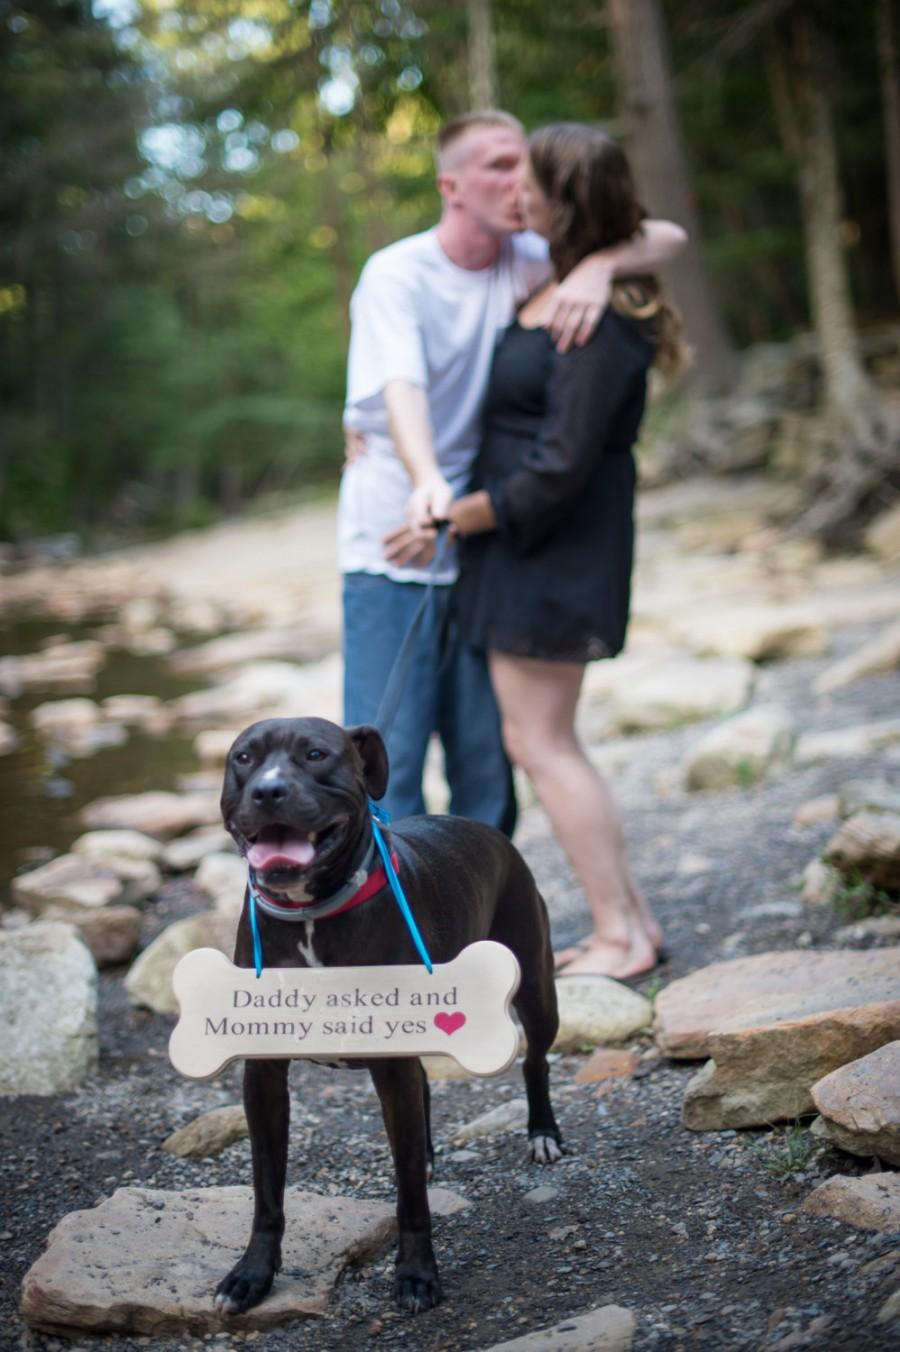 Mariage - Daddy Asked and Mommy Said Yes Engagement Photo Prop, Dog Photo Prop, Engagement Prop